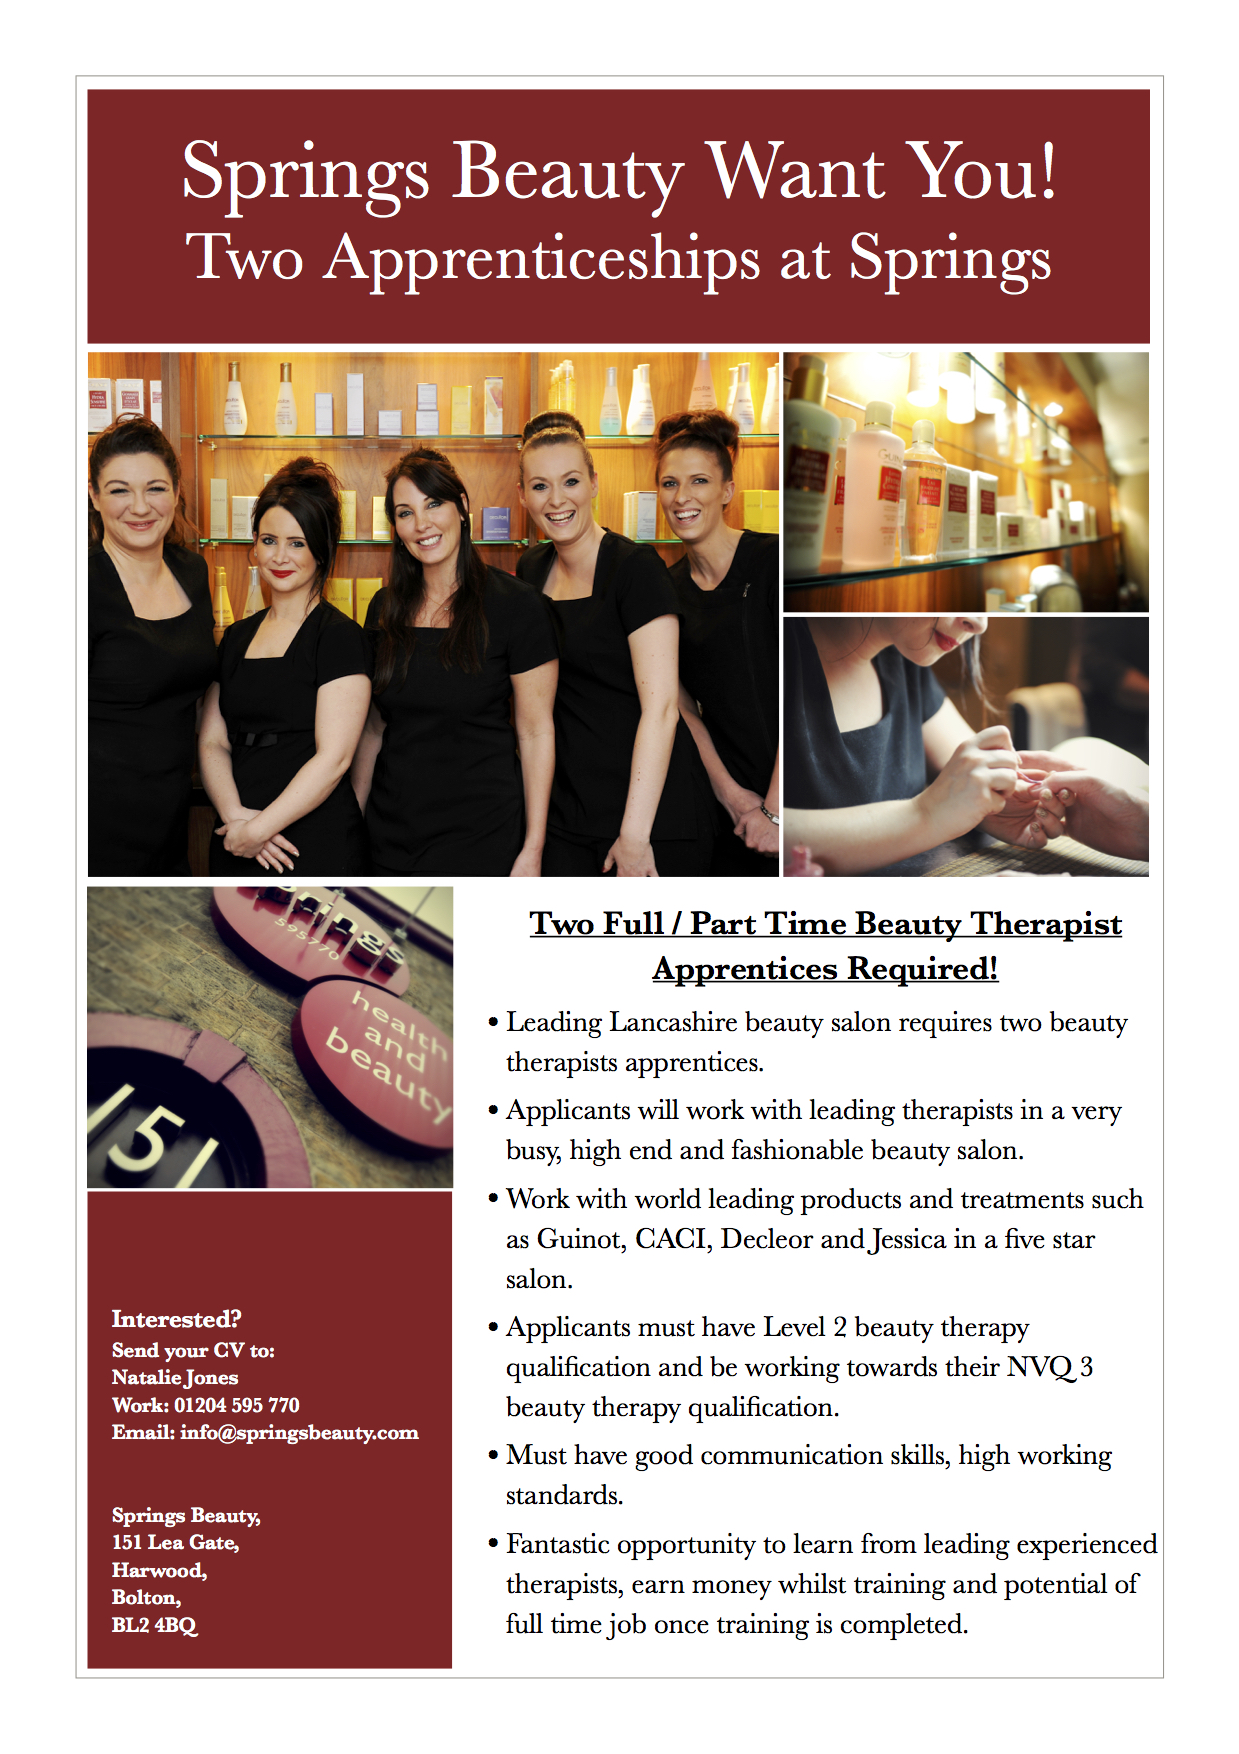 Springs Beauty seeks two beauty therapy apprentices